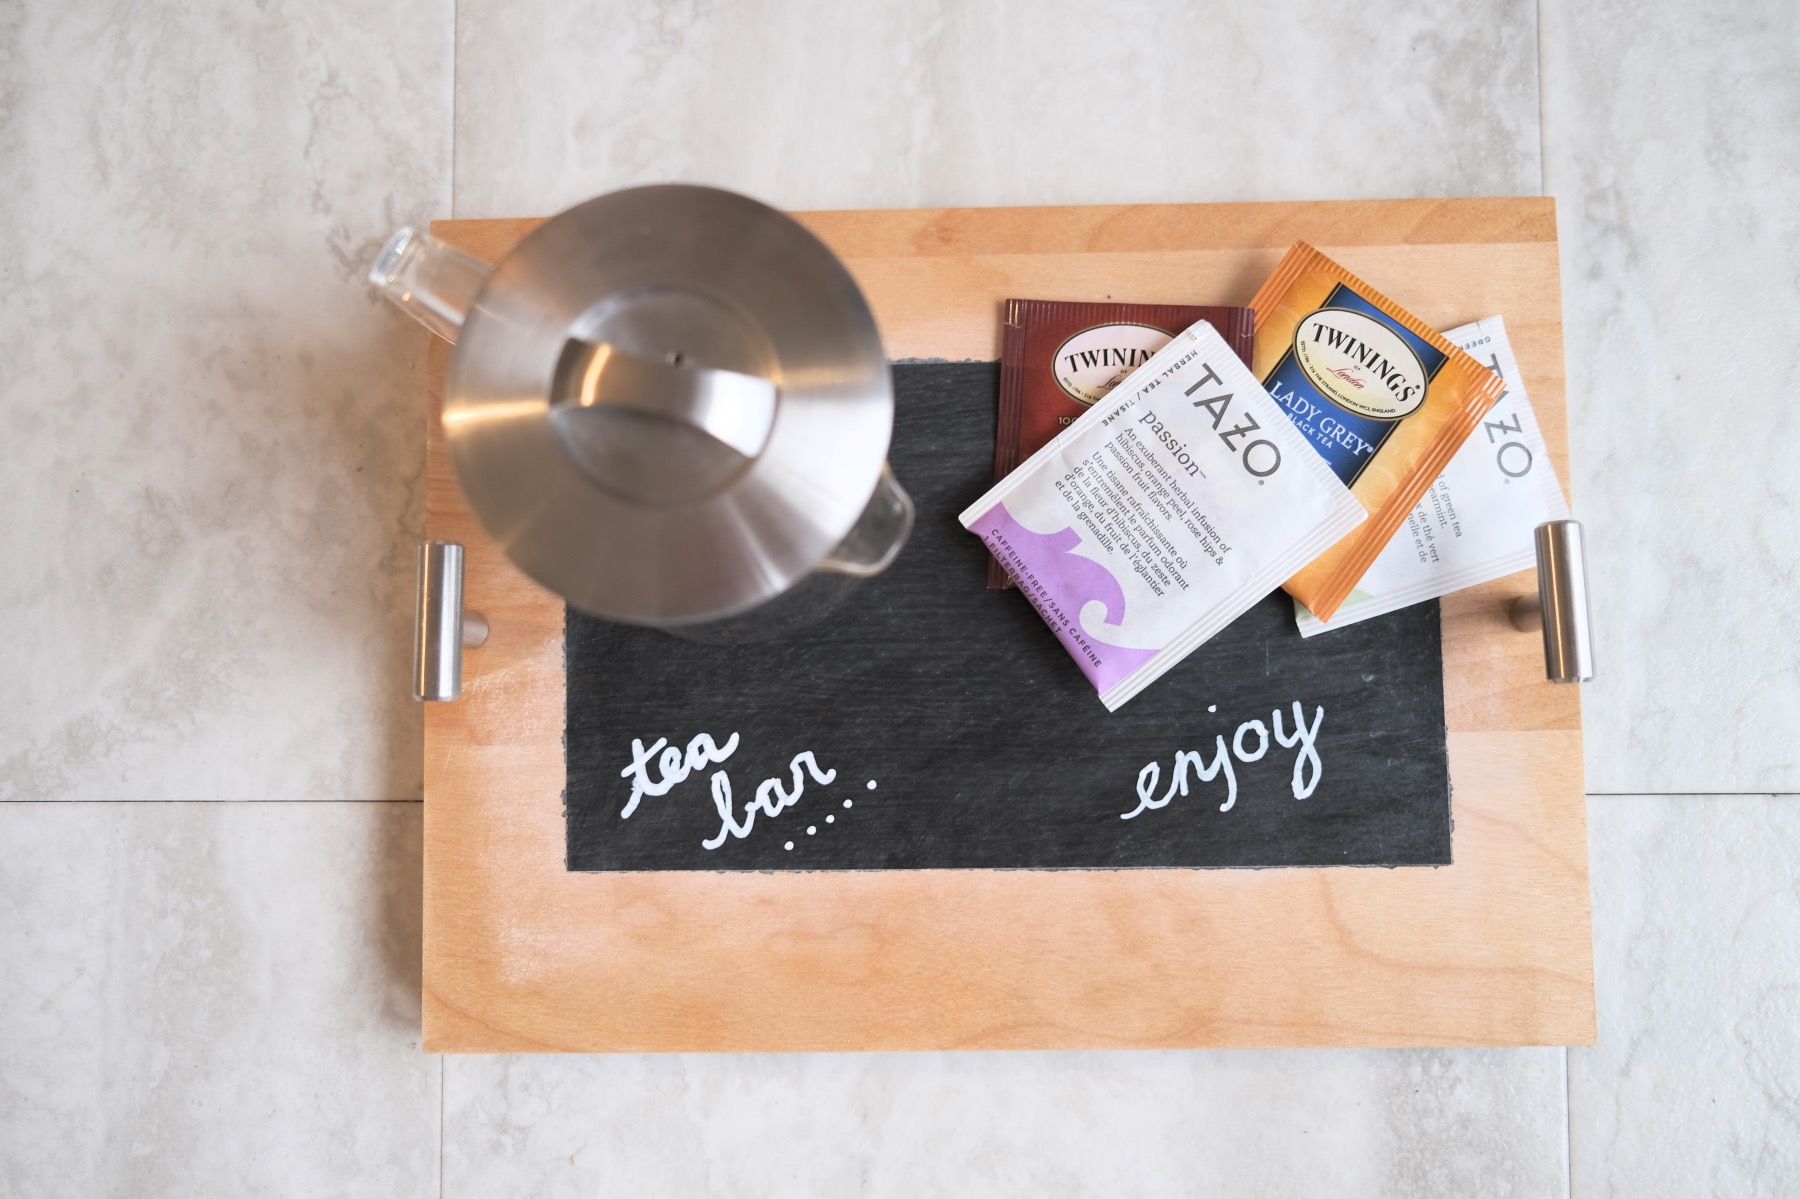 finished chalkboard painted wood tray diy